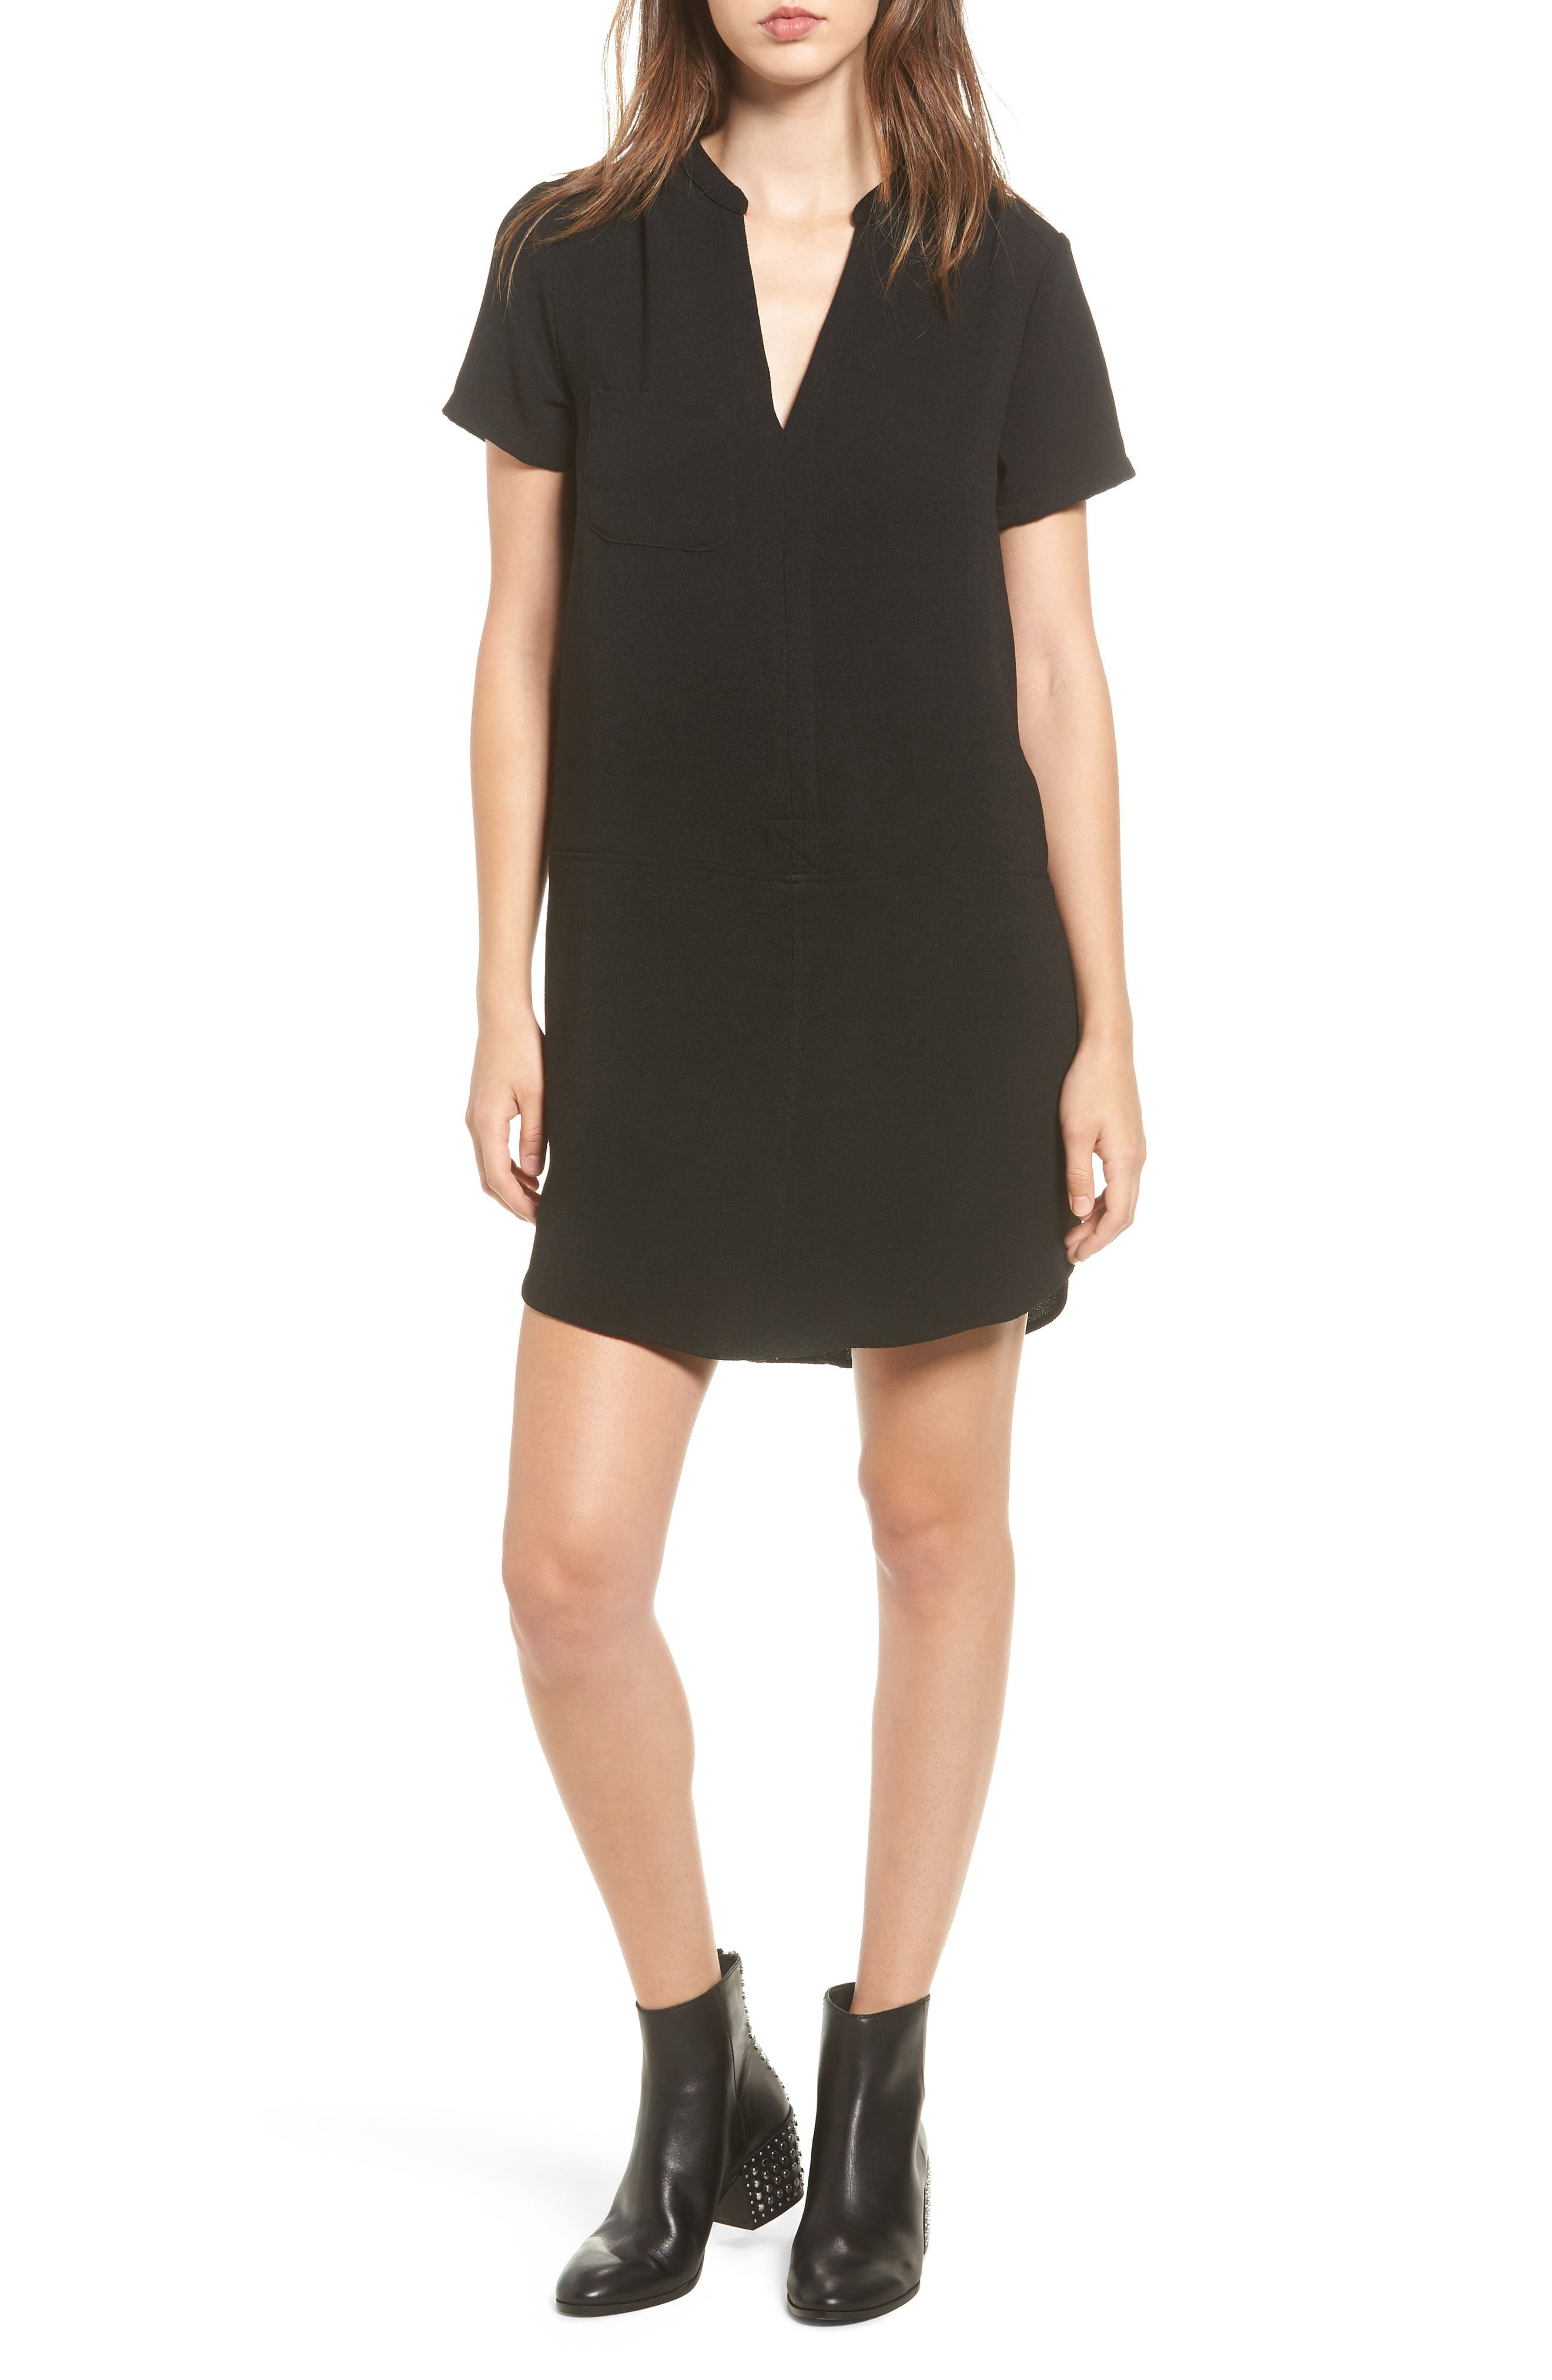 Black Shift Dresses for Women